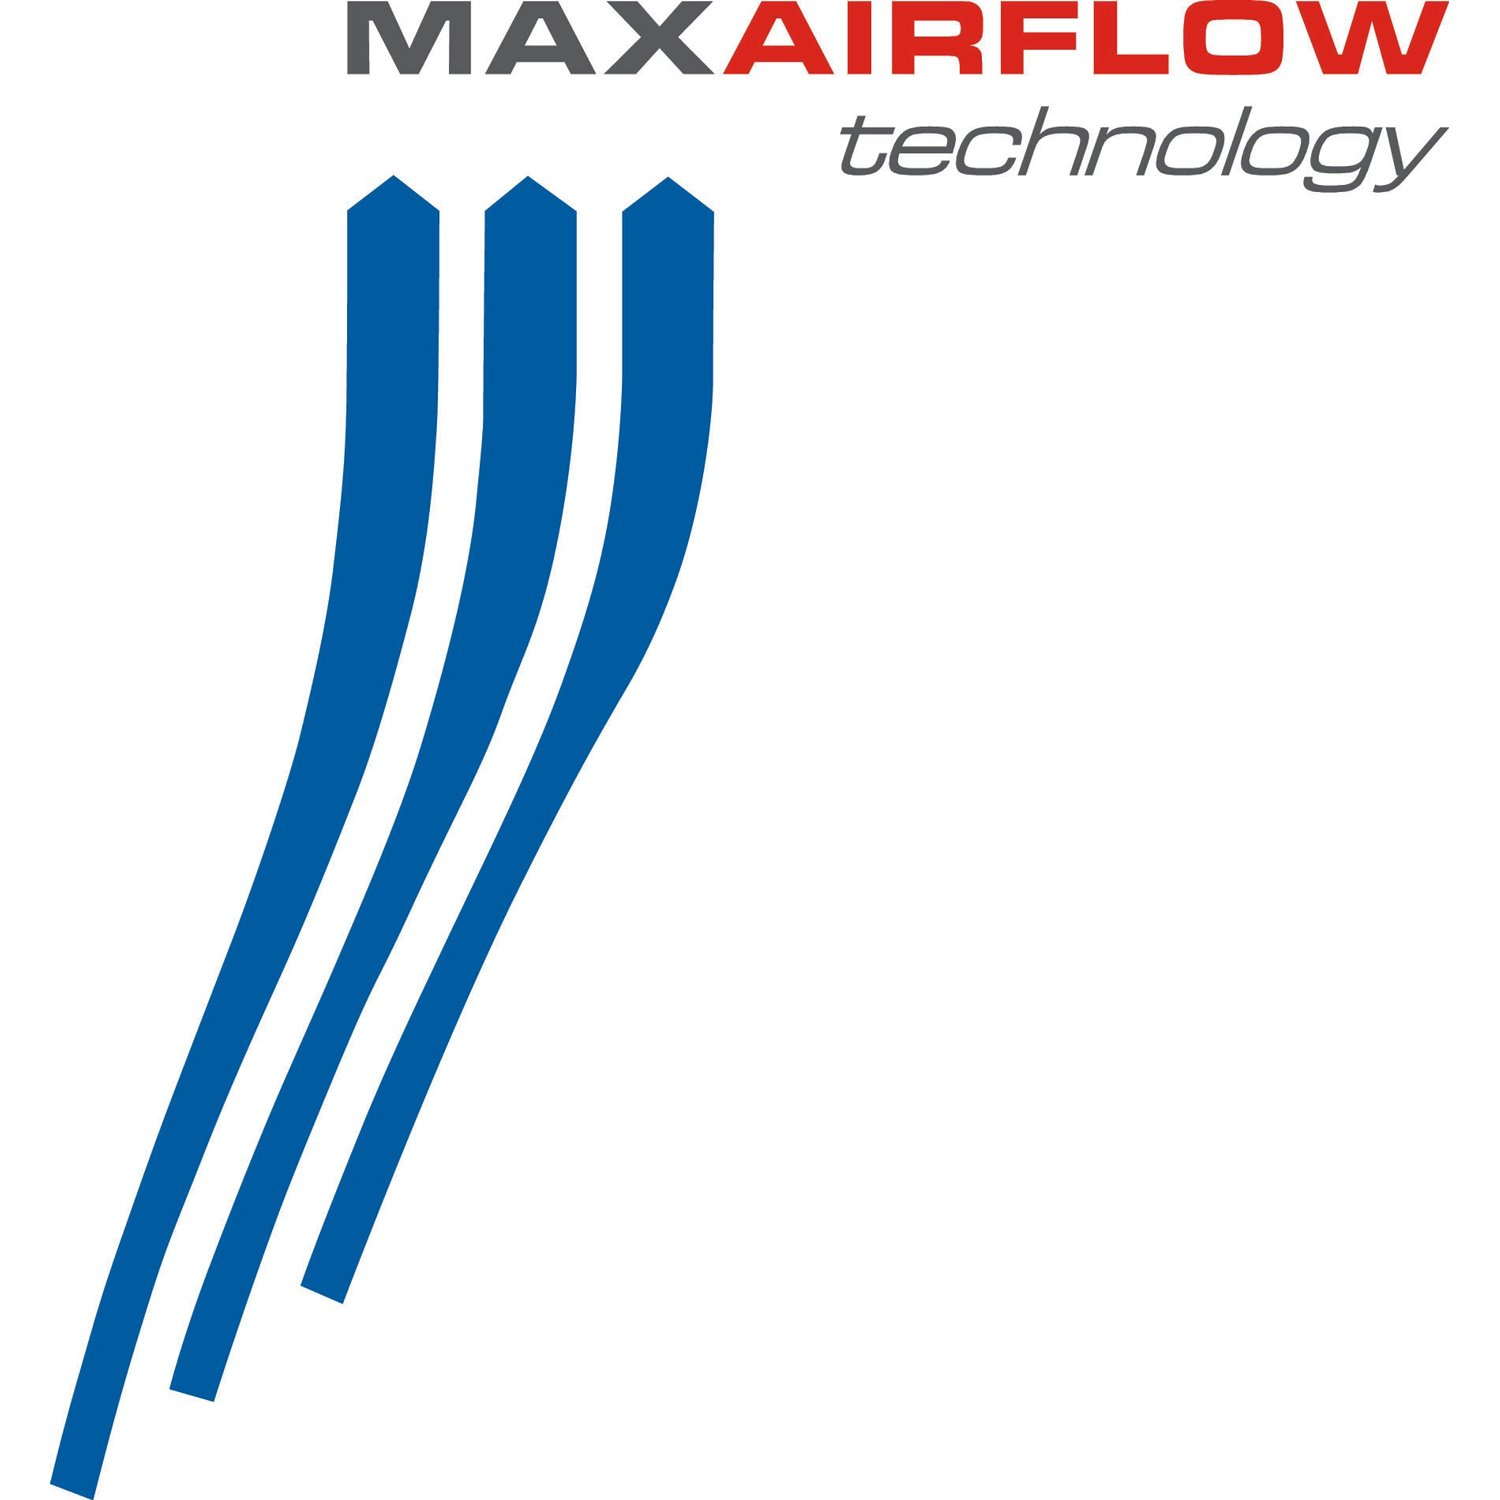 MaxAirflow Technology